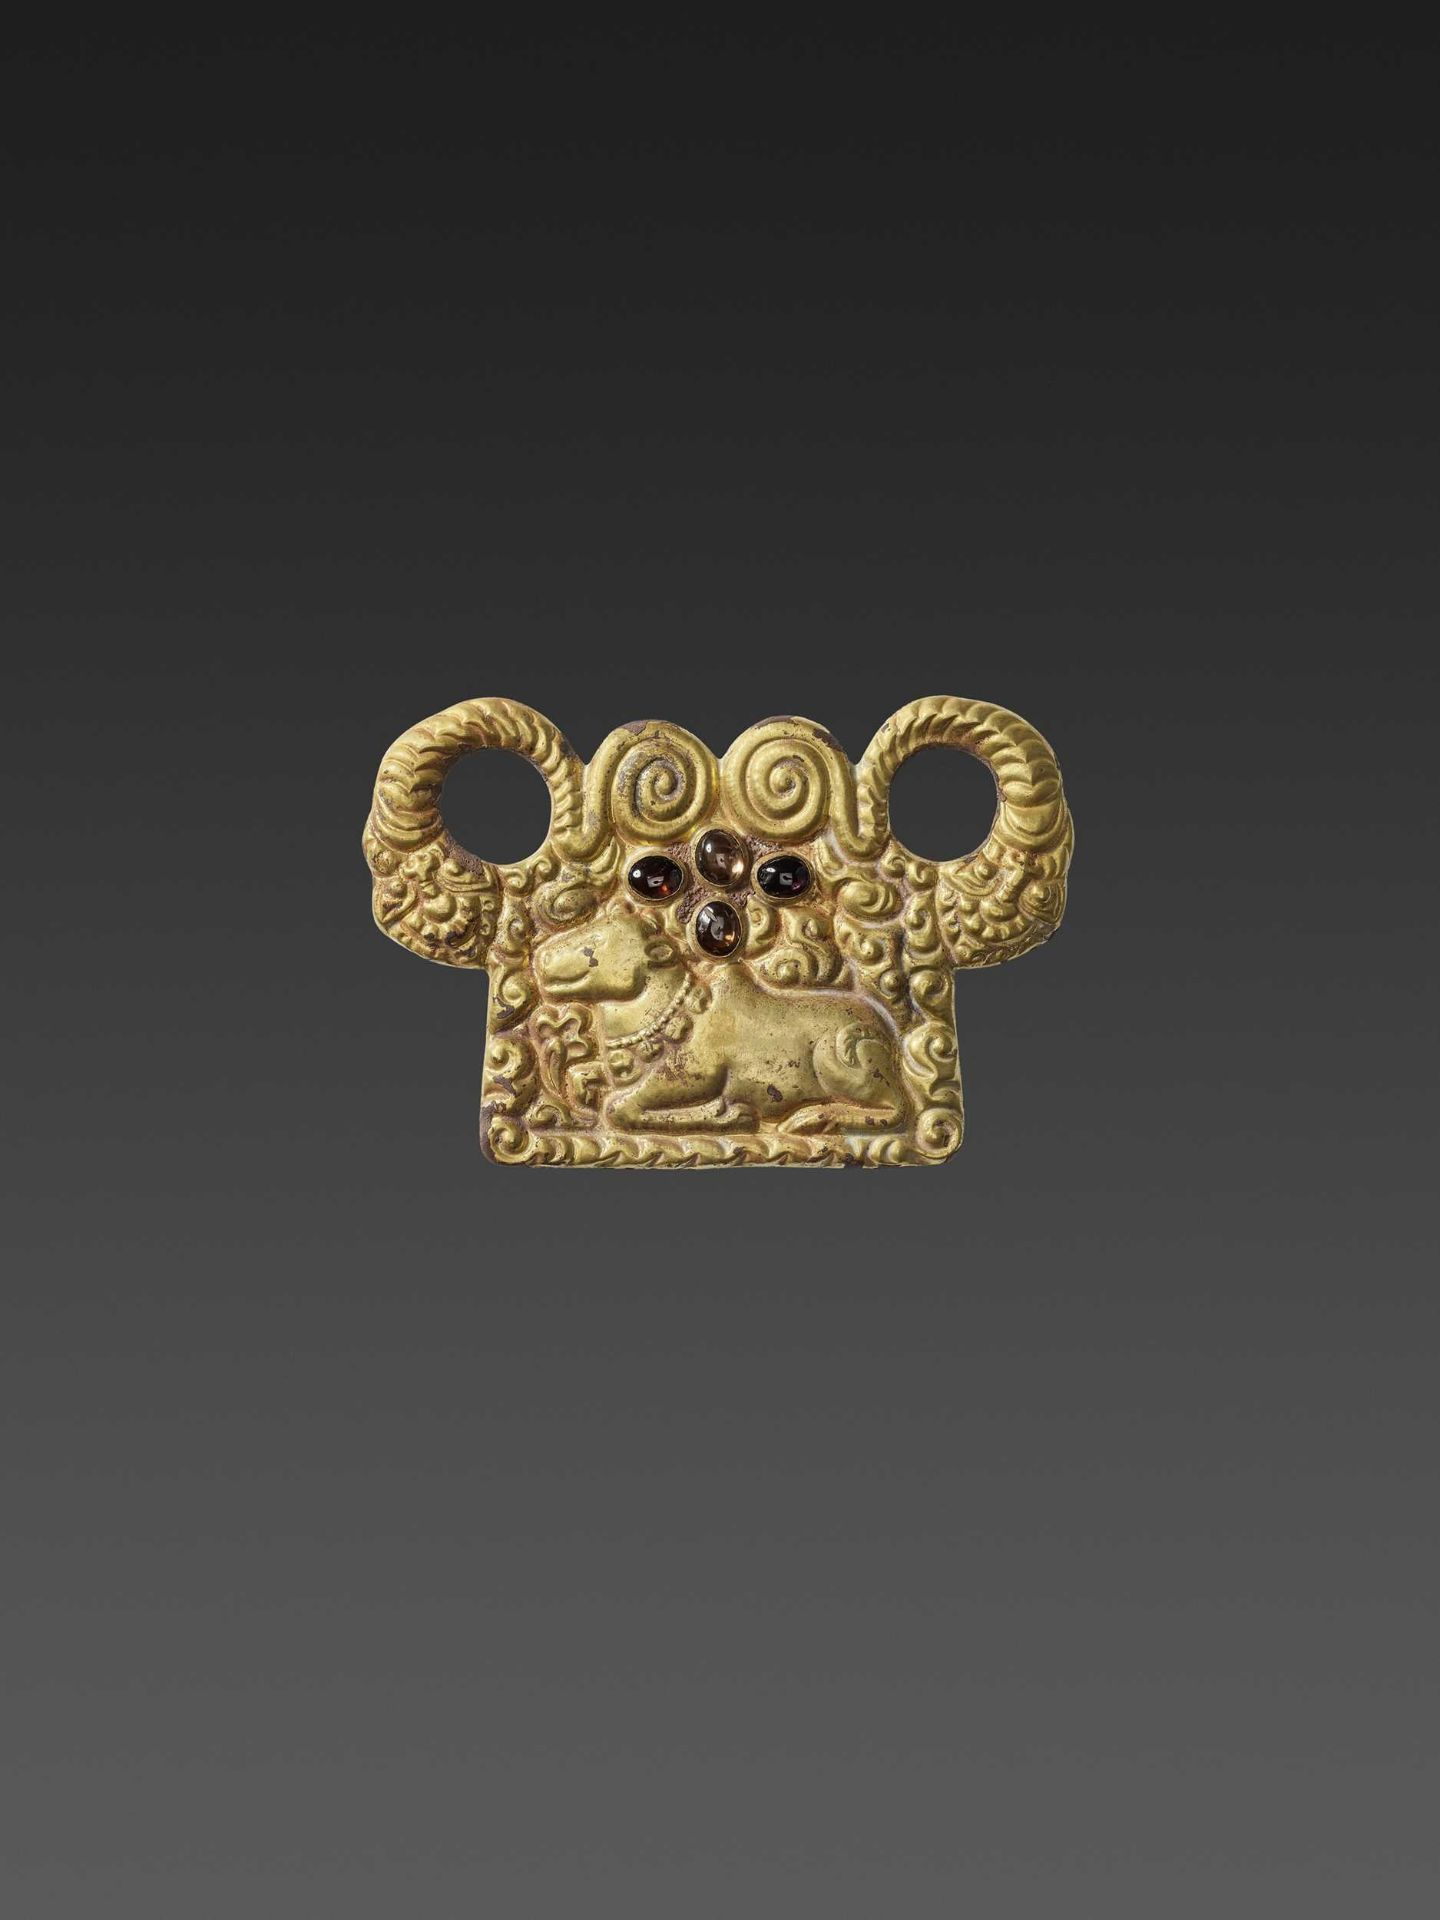 A CHAM ZIRCON AND AMETHYST-SET GOLD REPOUSSÉ PECTORAL DEPICTING NANDI AND NAGAS